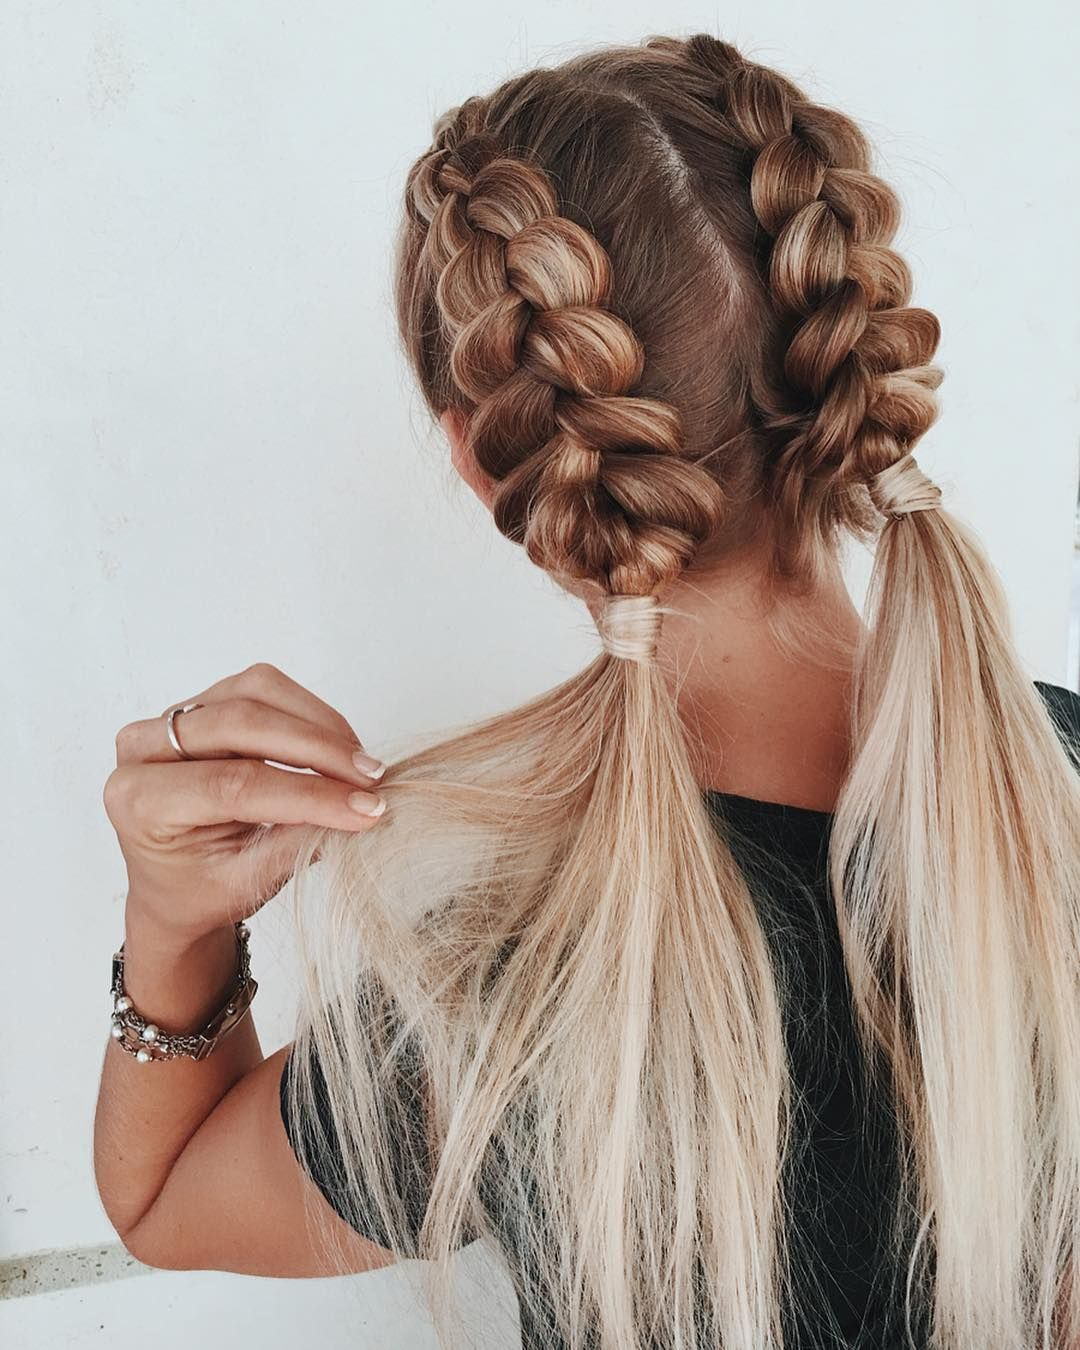 Pin by 𝙸𝚟𝚢 𝙻𝚊𝚌𝚎𝚢 on have a good hair day pinterest